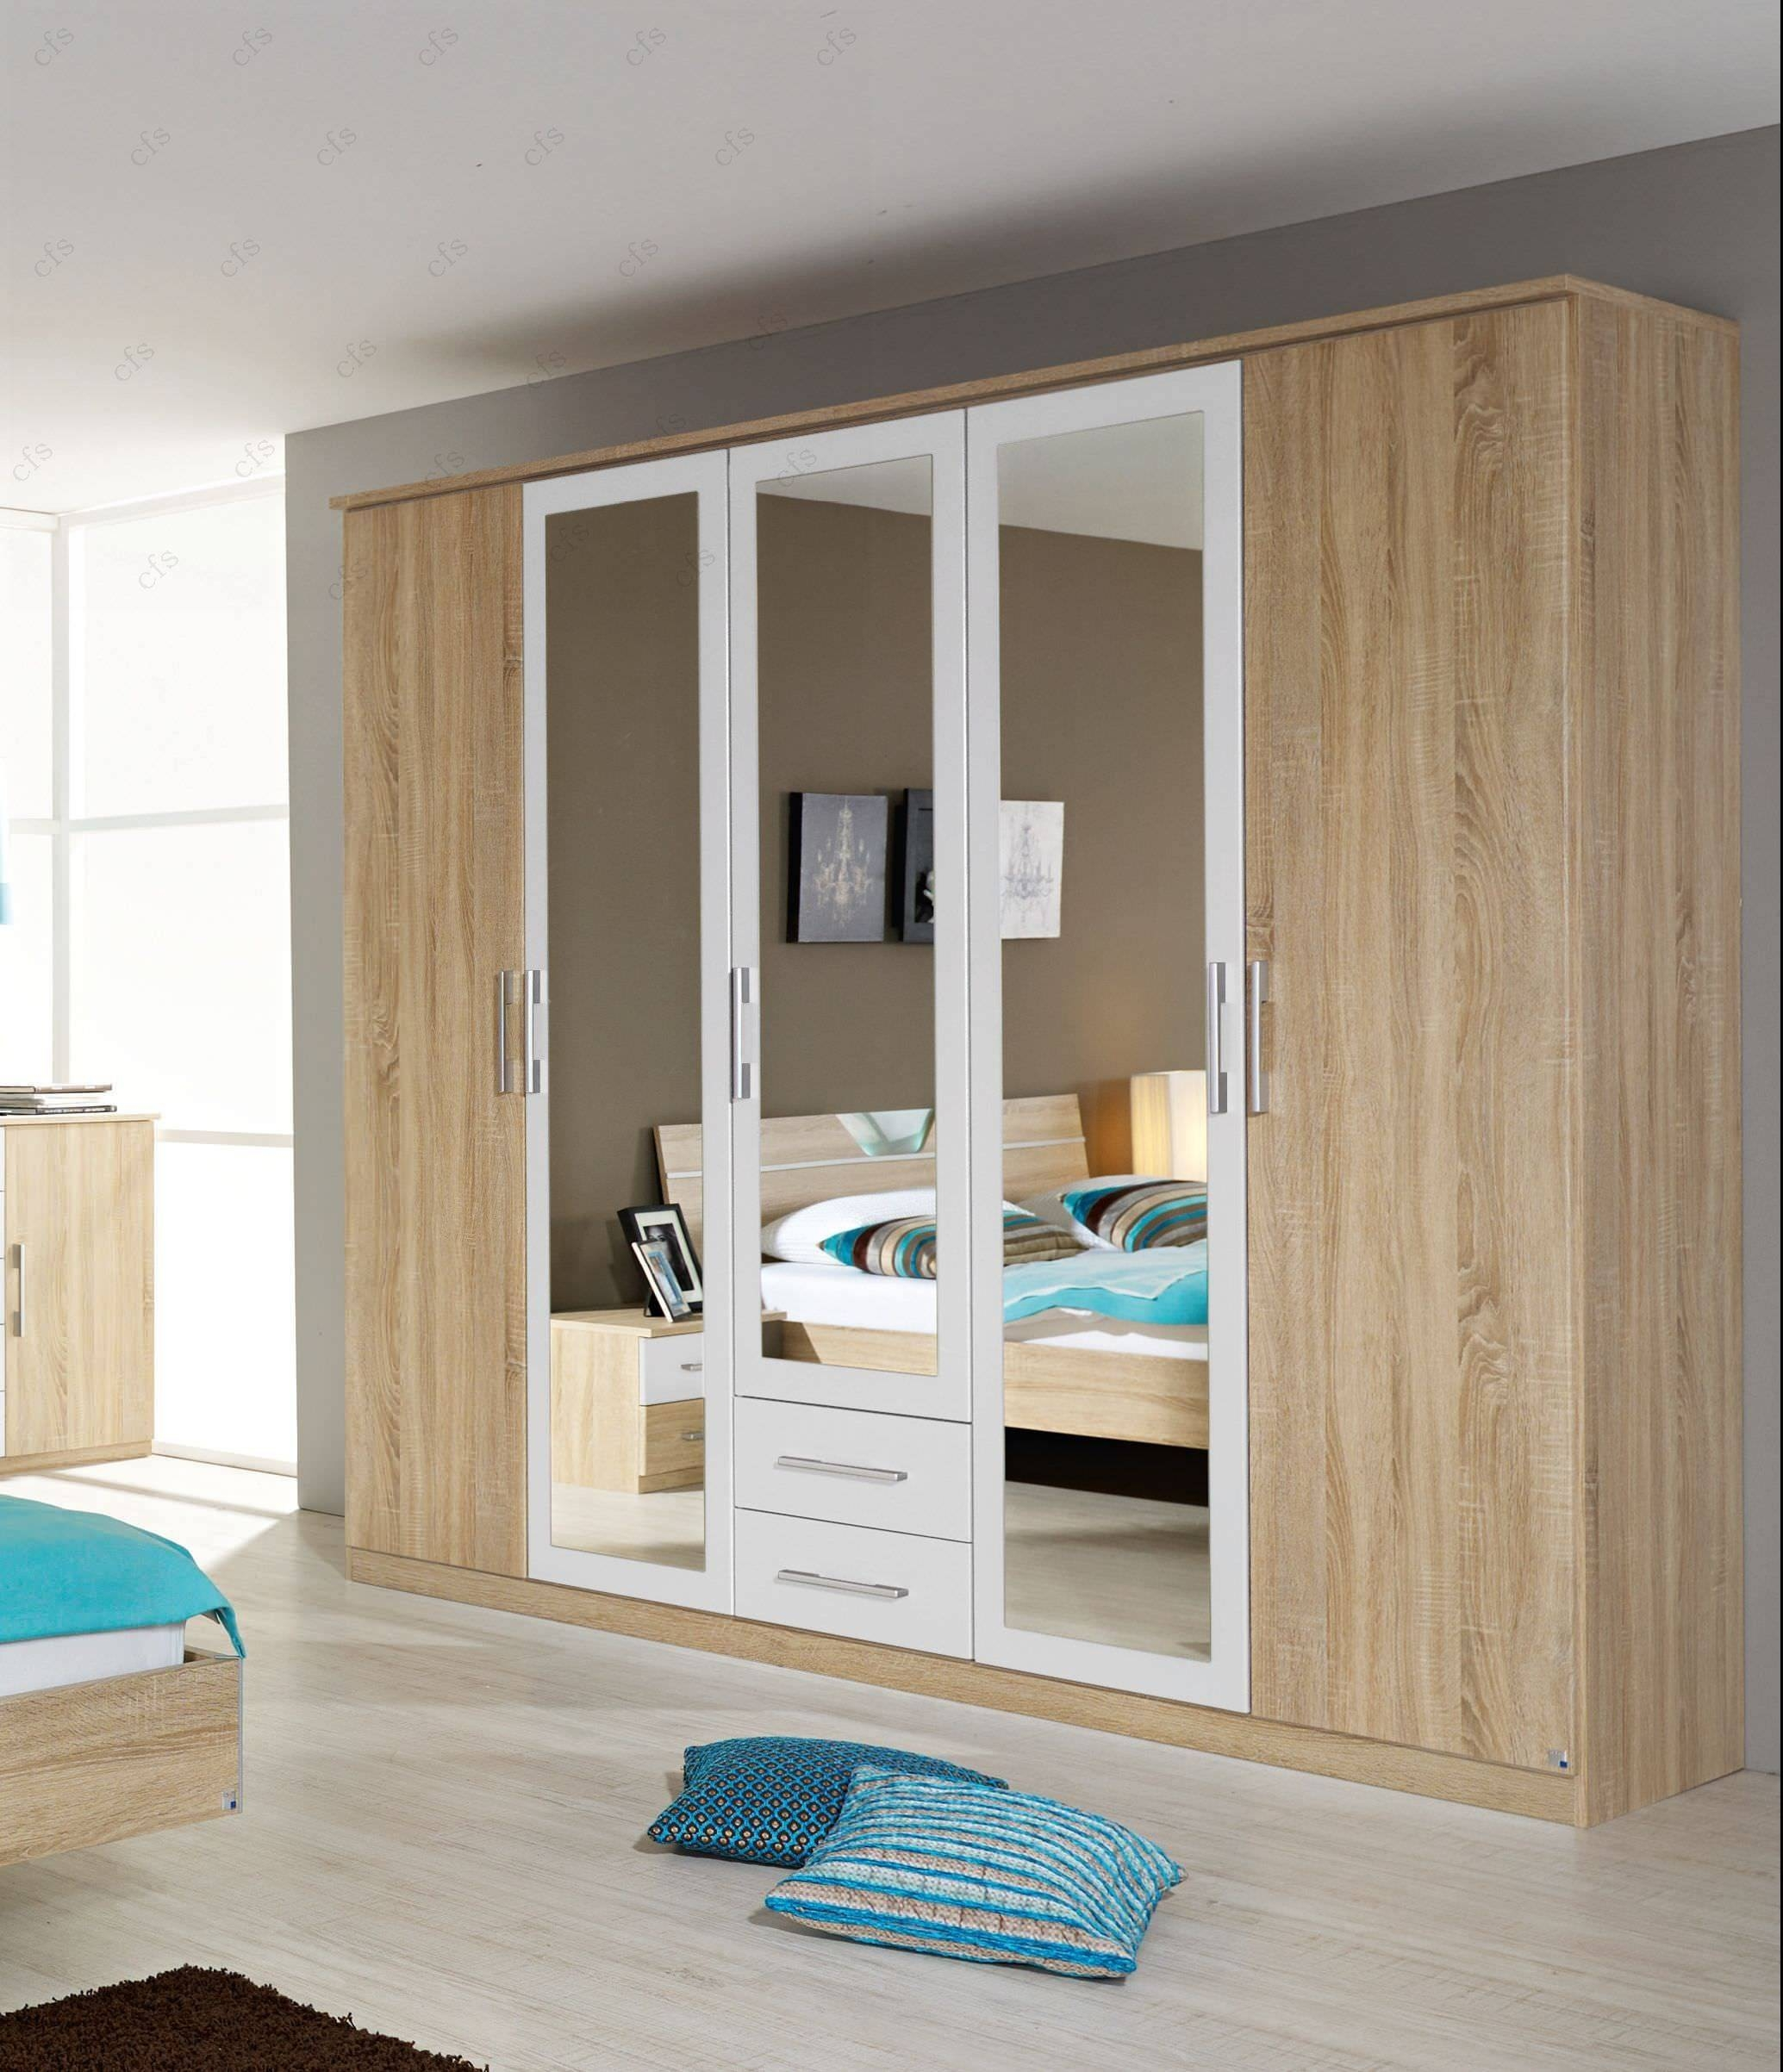 Rauch Furniture | Valence 5 Door Mirror Wardrobe | Bedsdirectuk With Regard To Rauch Wardrobes (View 4 of 15)